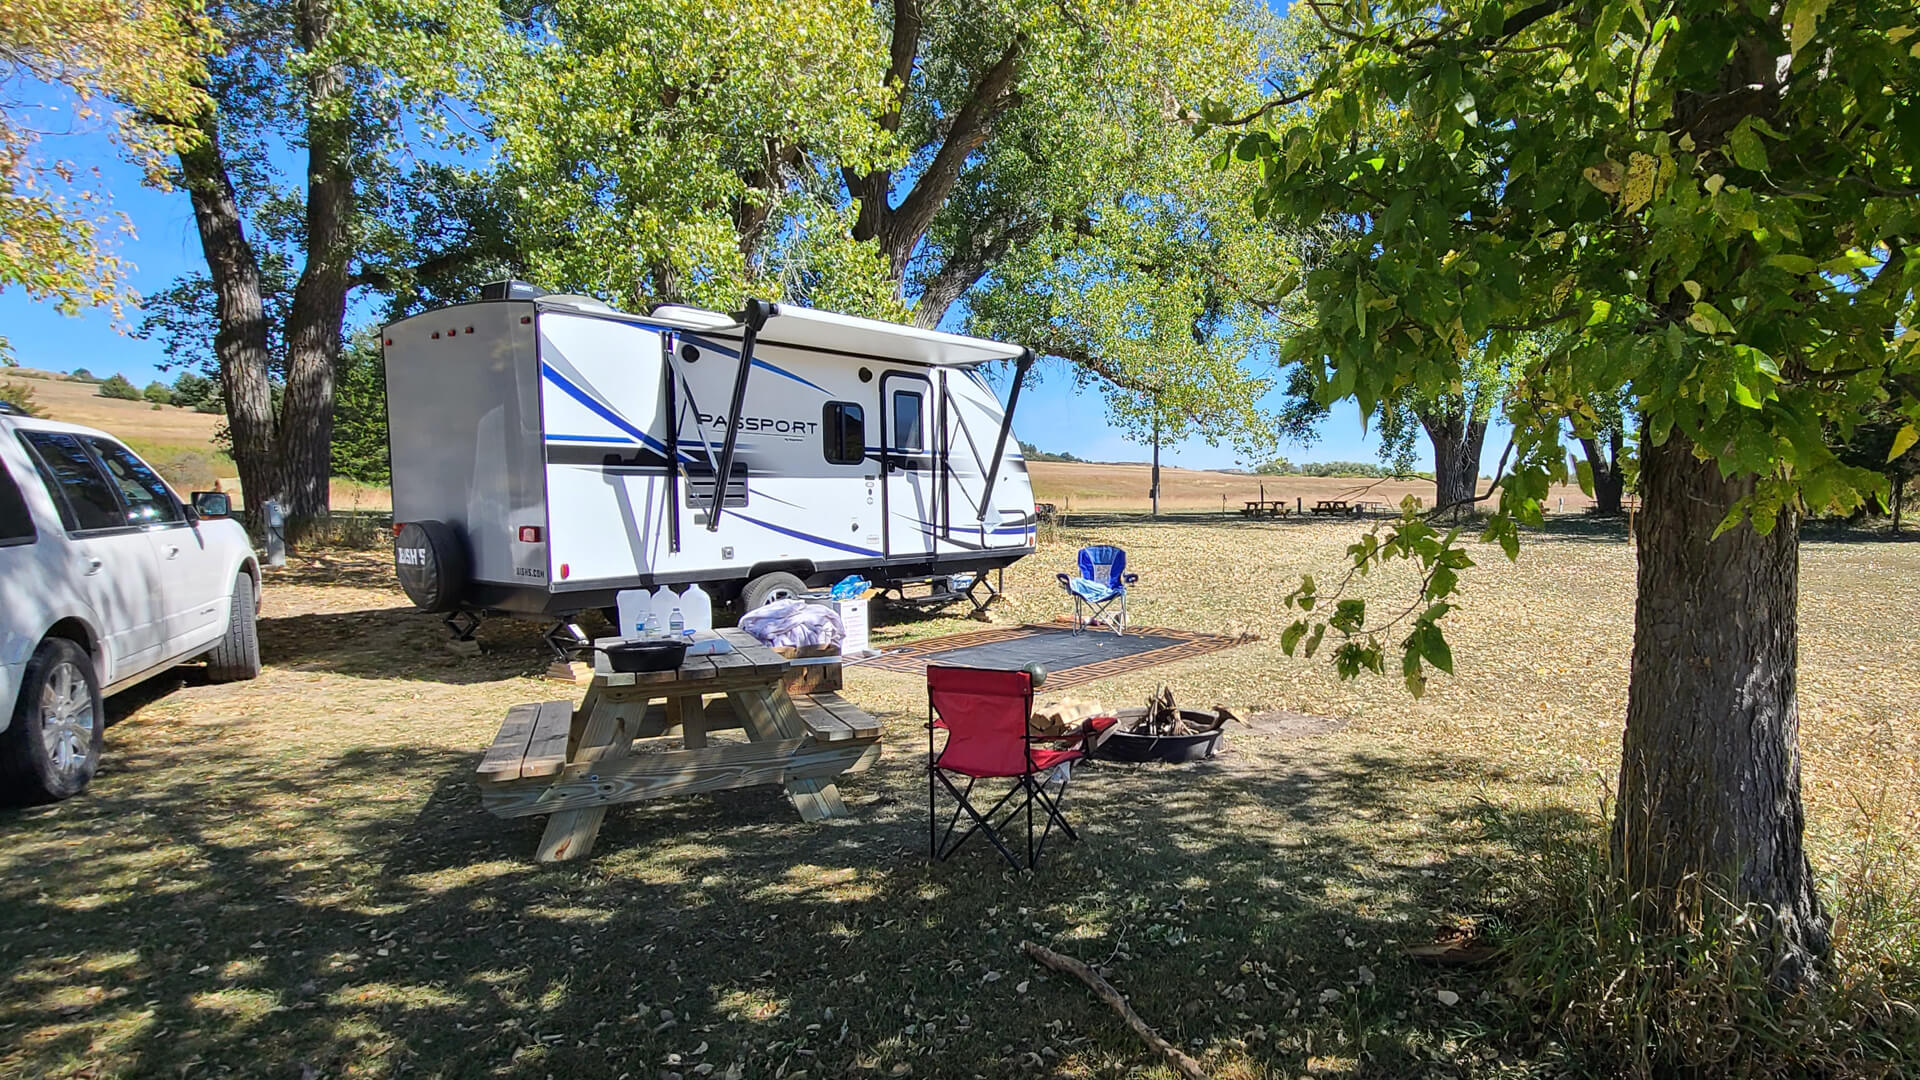 Camper set up near picnic table and fire pit